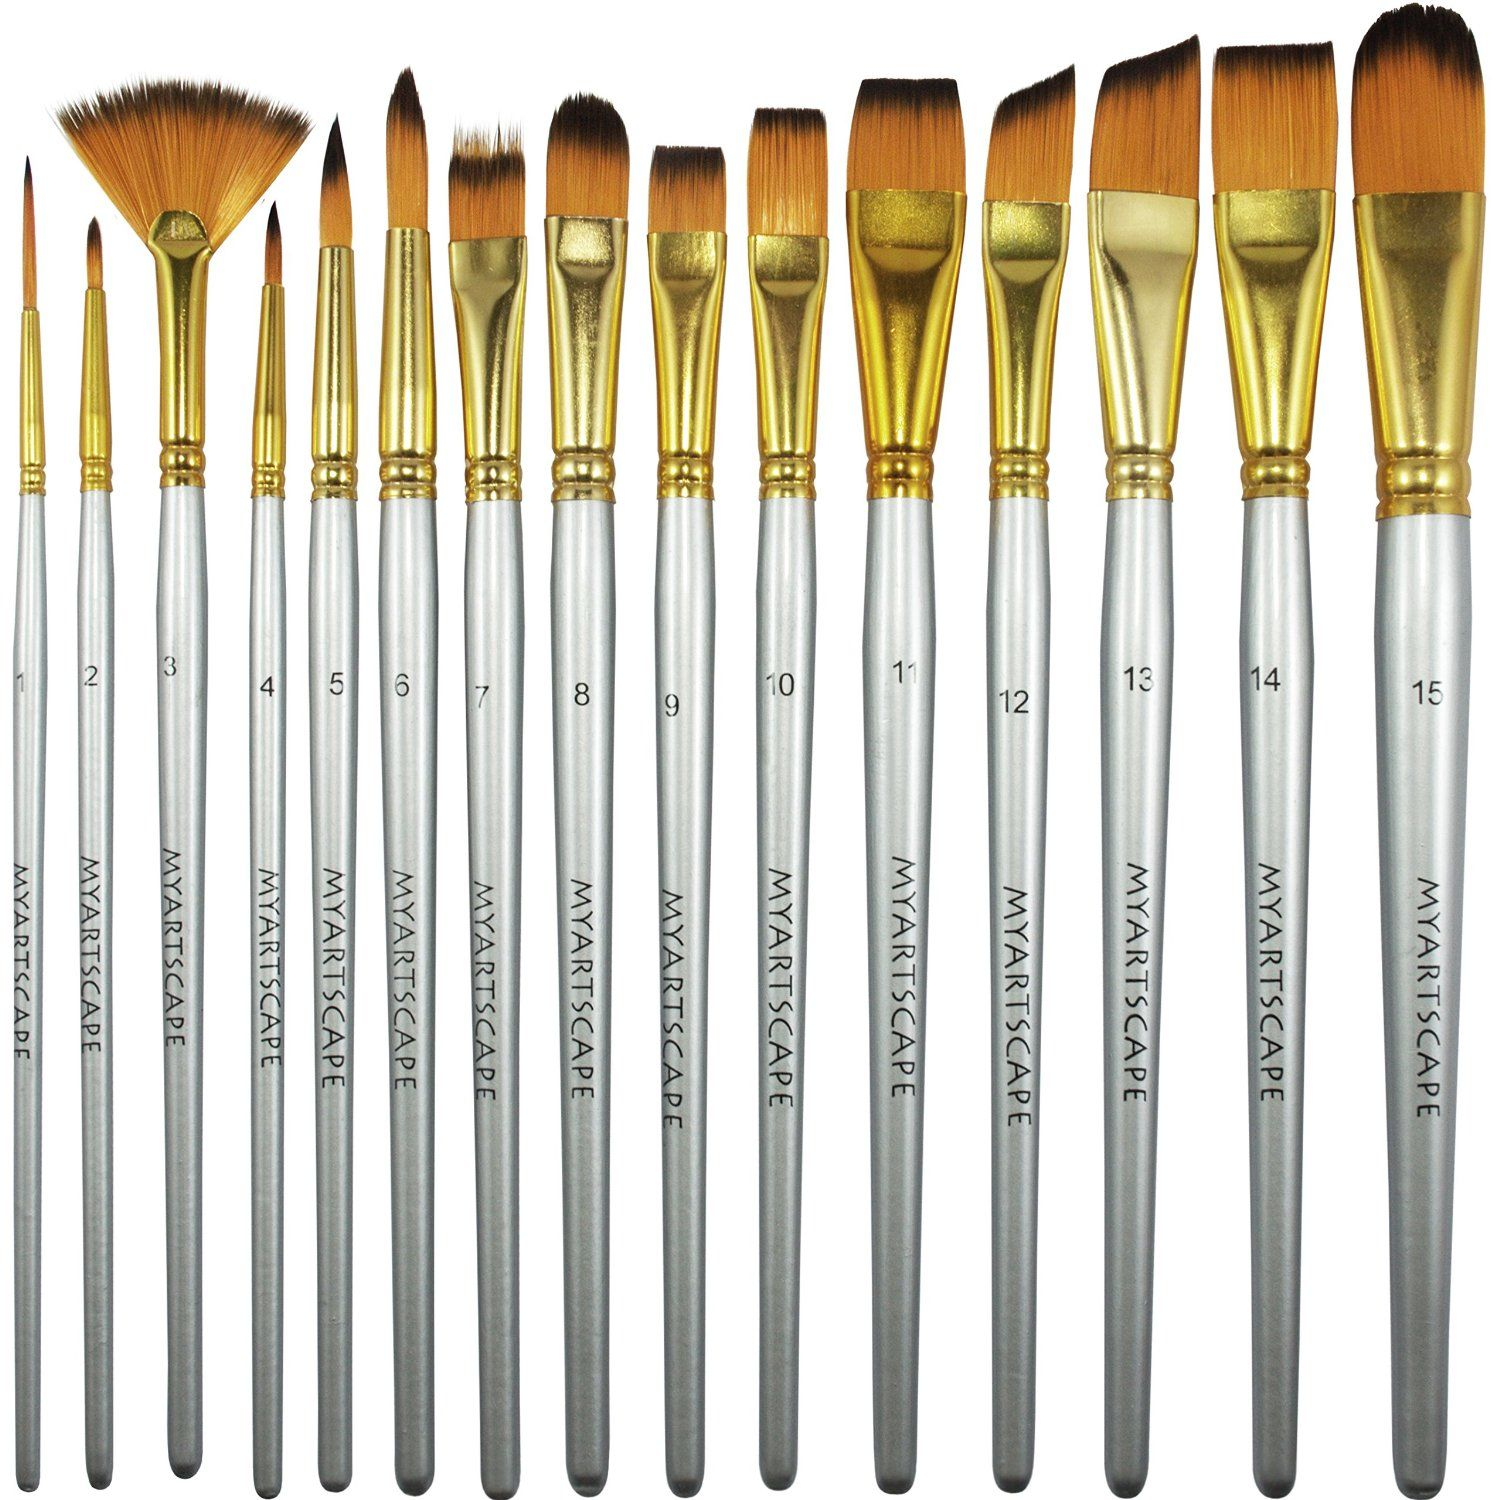 The 5 Best Acrylic Paint Brushes Best brushes, Oil